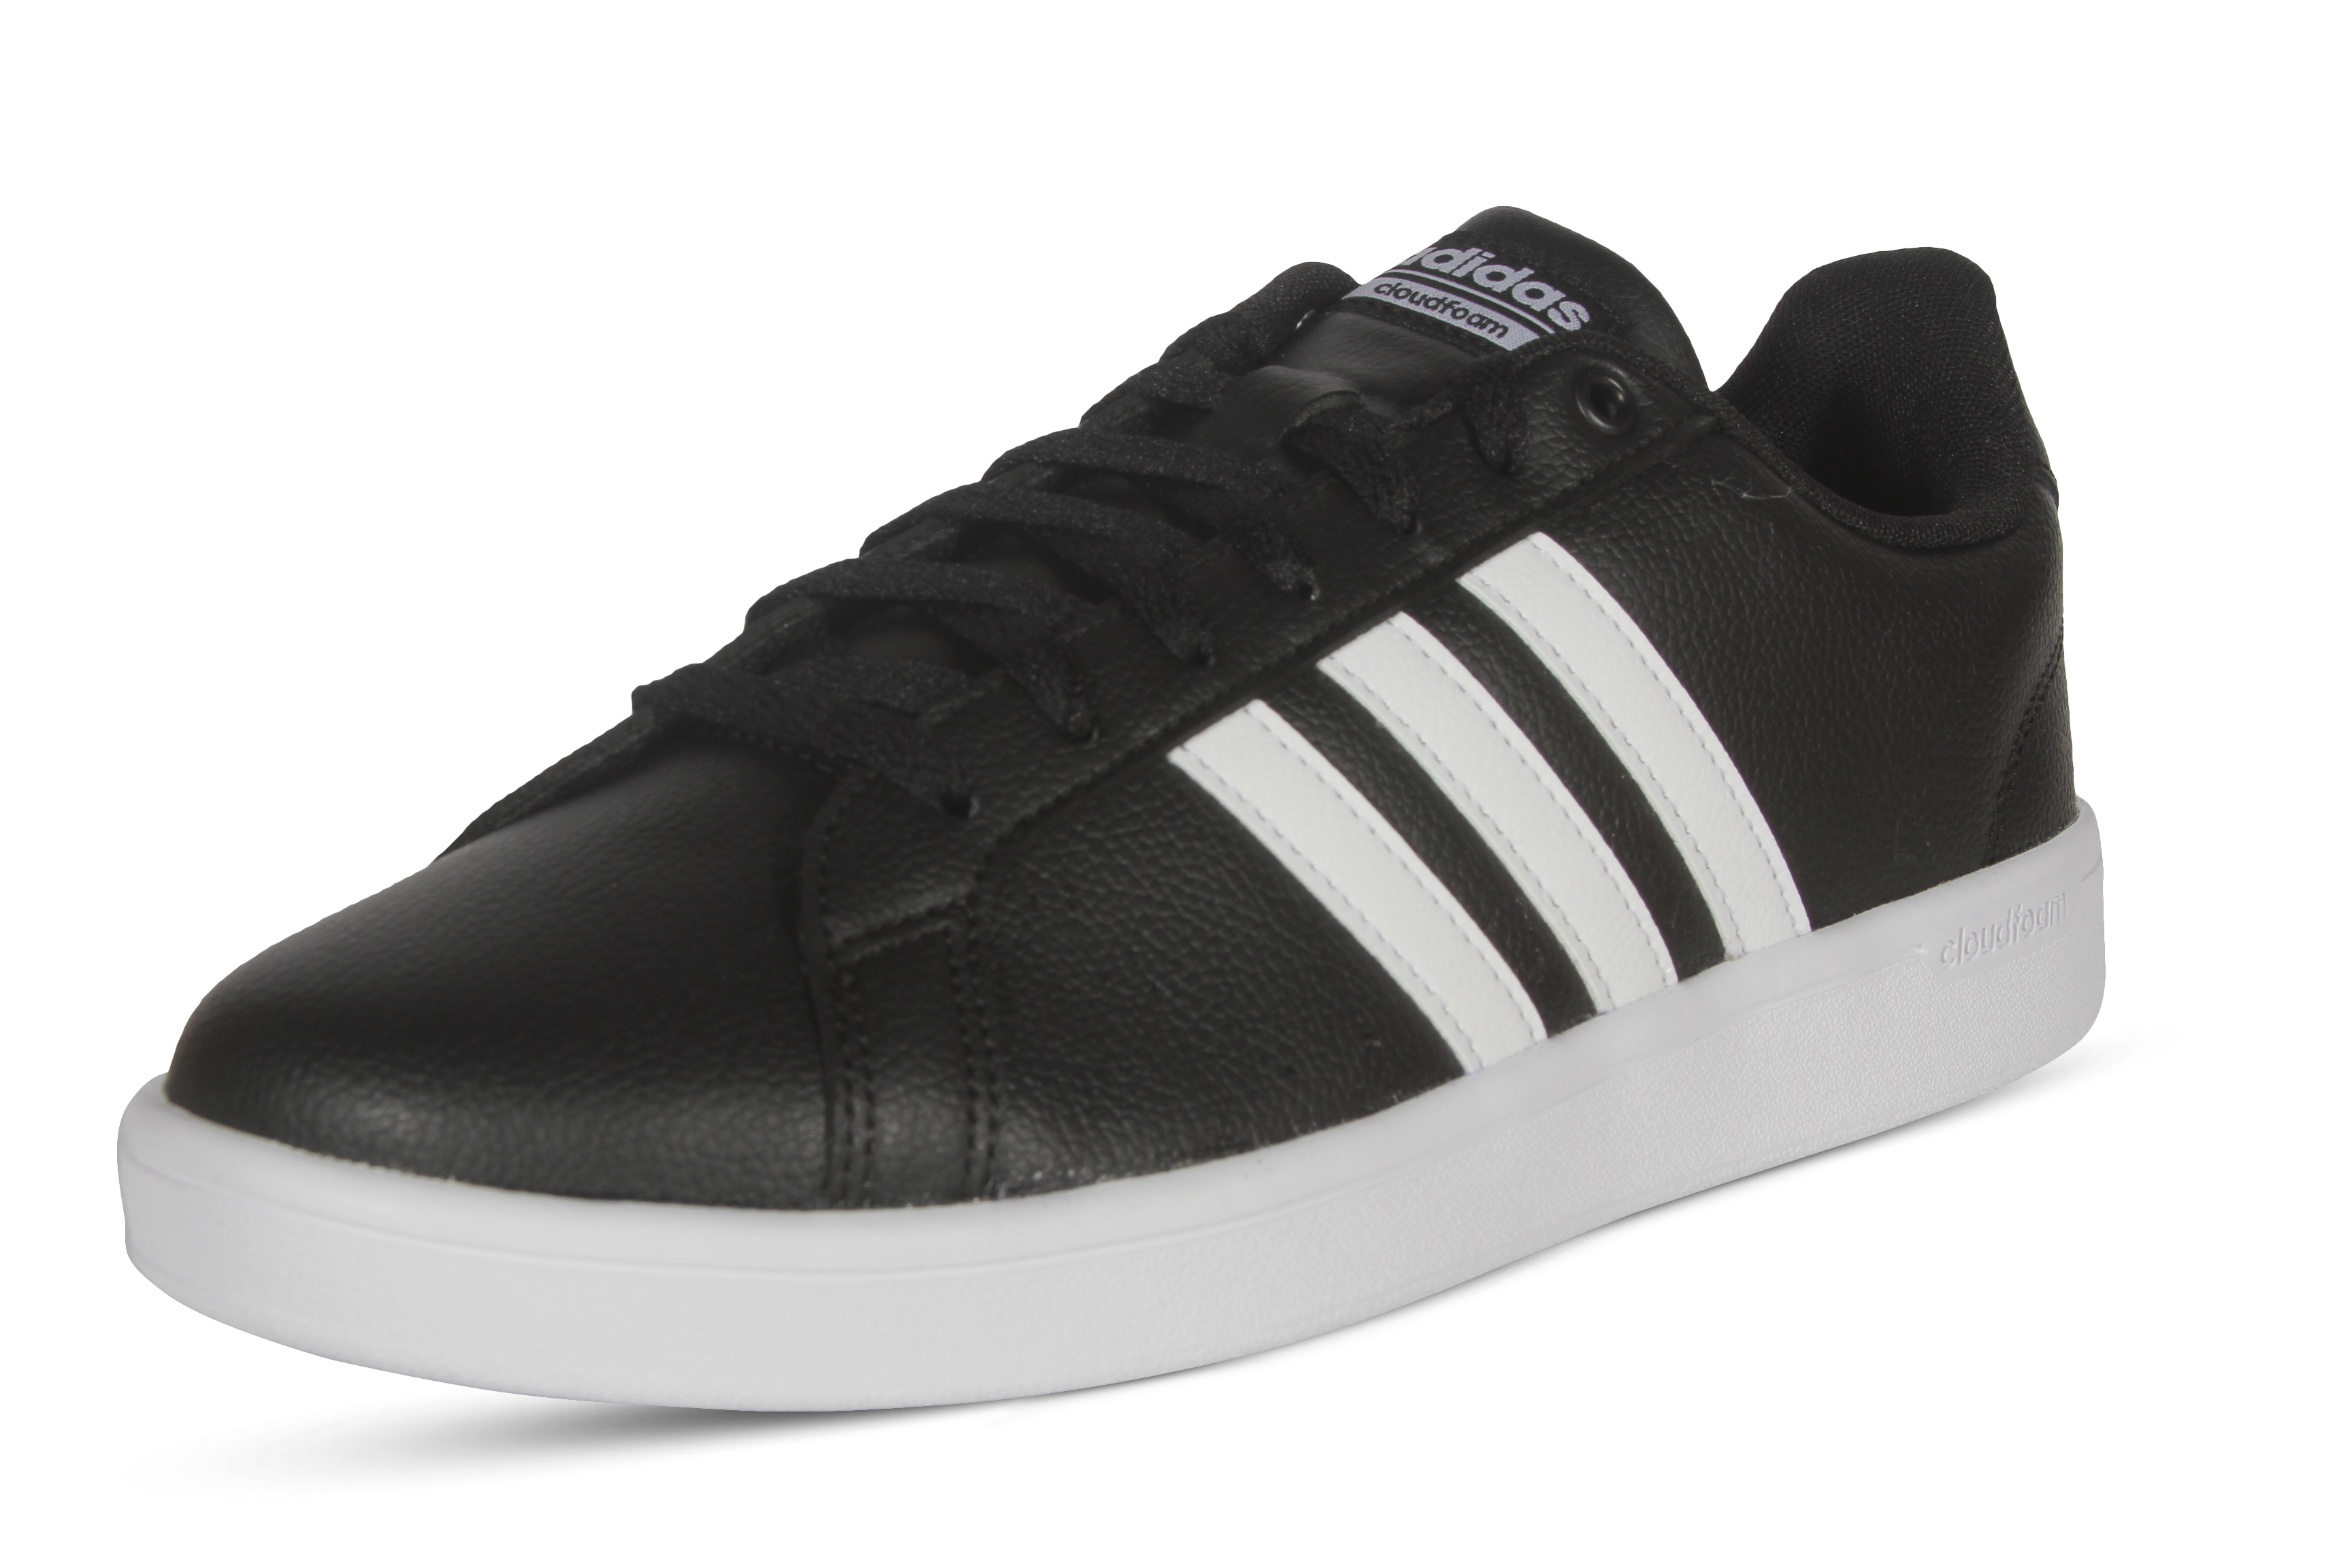 ecdcd76330c6 Adidas Cloudfoam Advantage Men s Sport Inspired Shoes B74264